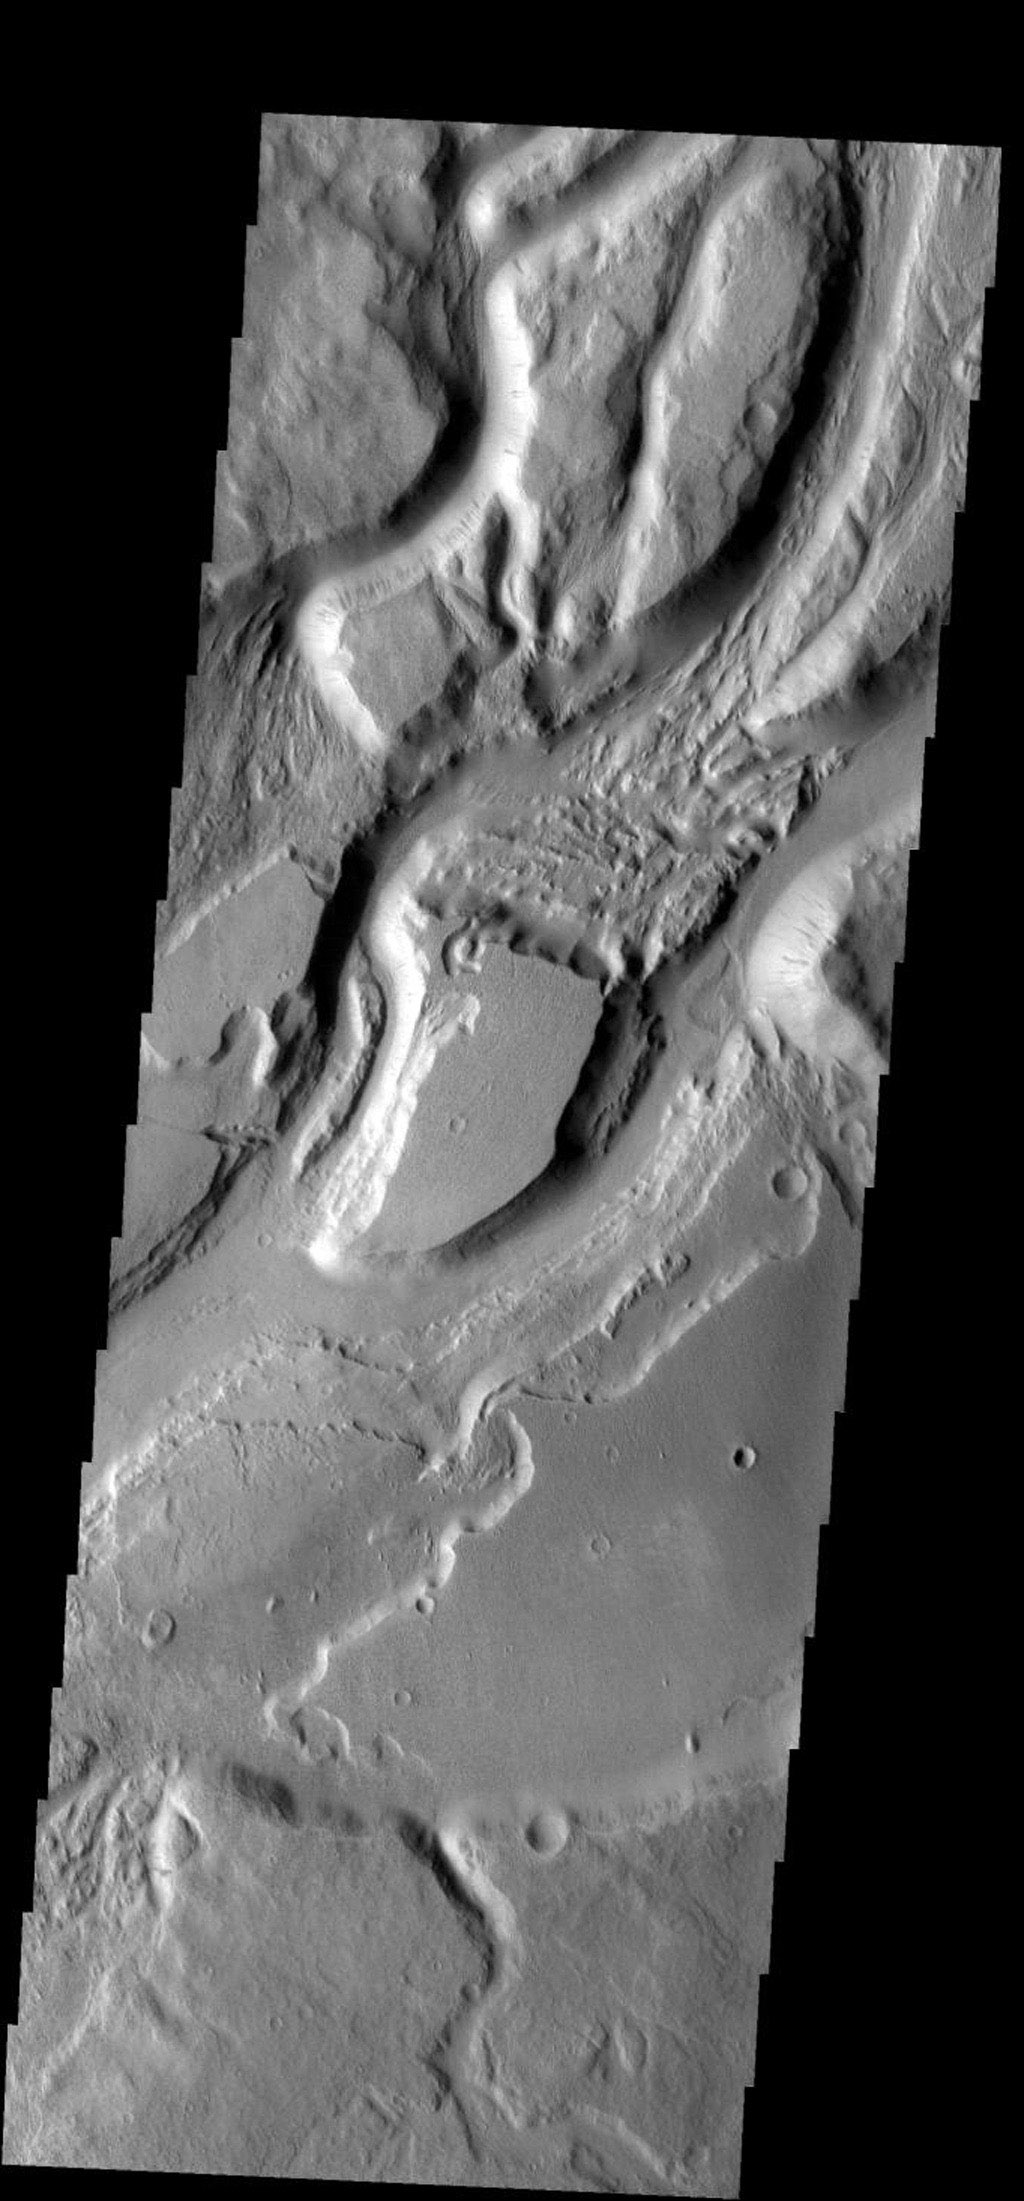 The many interconnected channels in this image are all part of Sabis Vallis on Mars as seen by NASA's 2001 Mars Odyssey spacecraft.